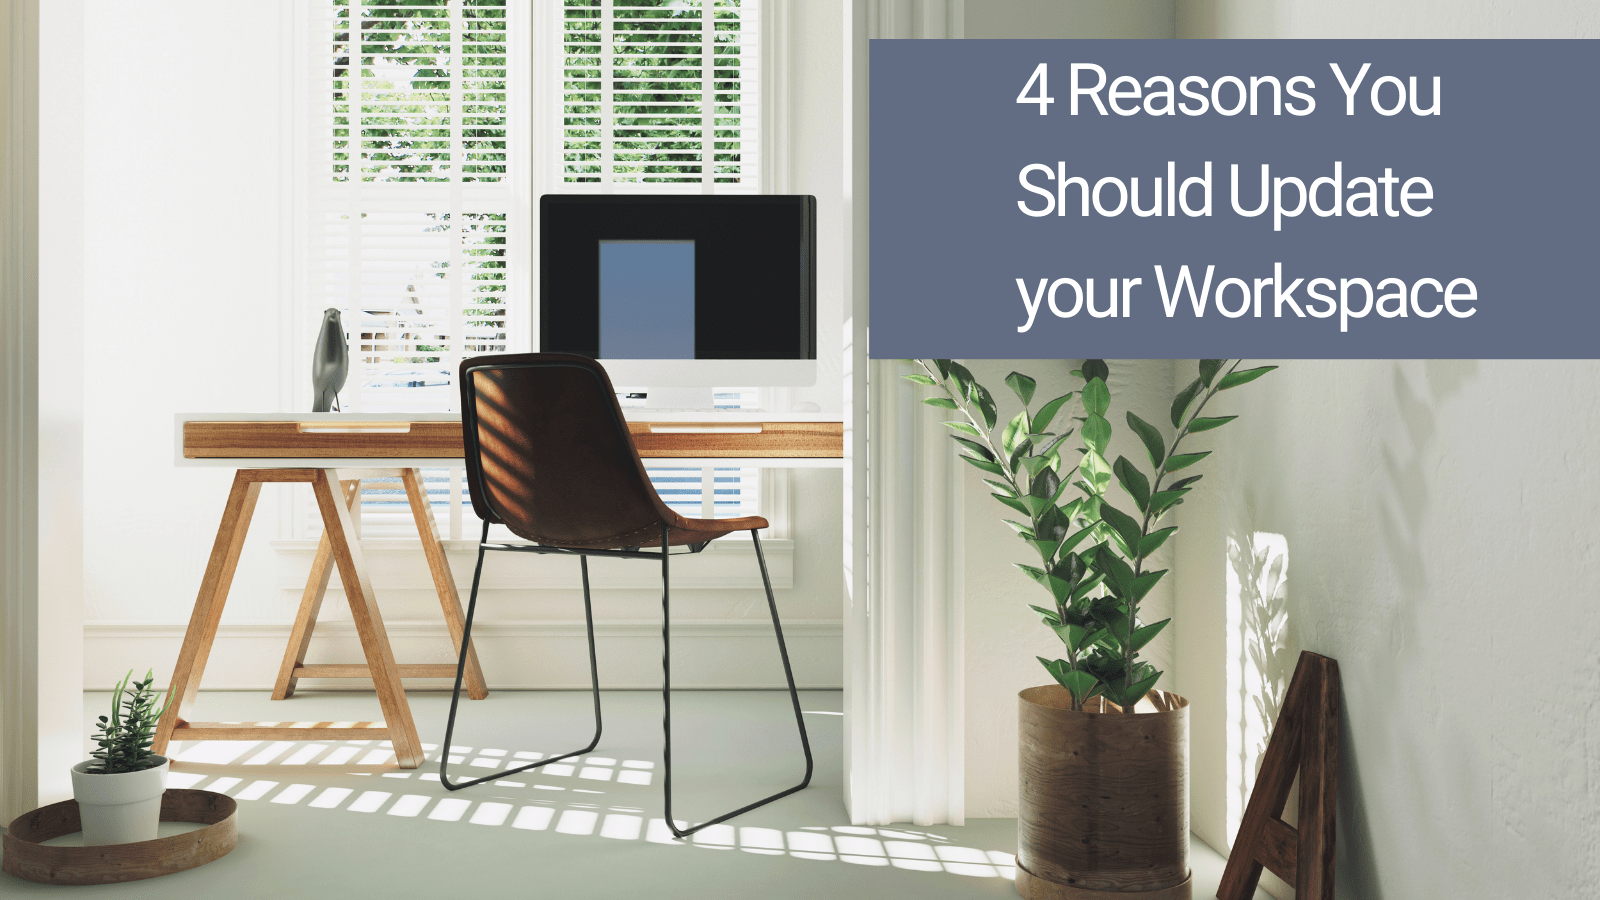 4 Reasons You Should Update Your Workspace